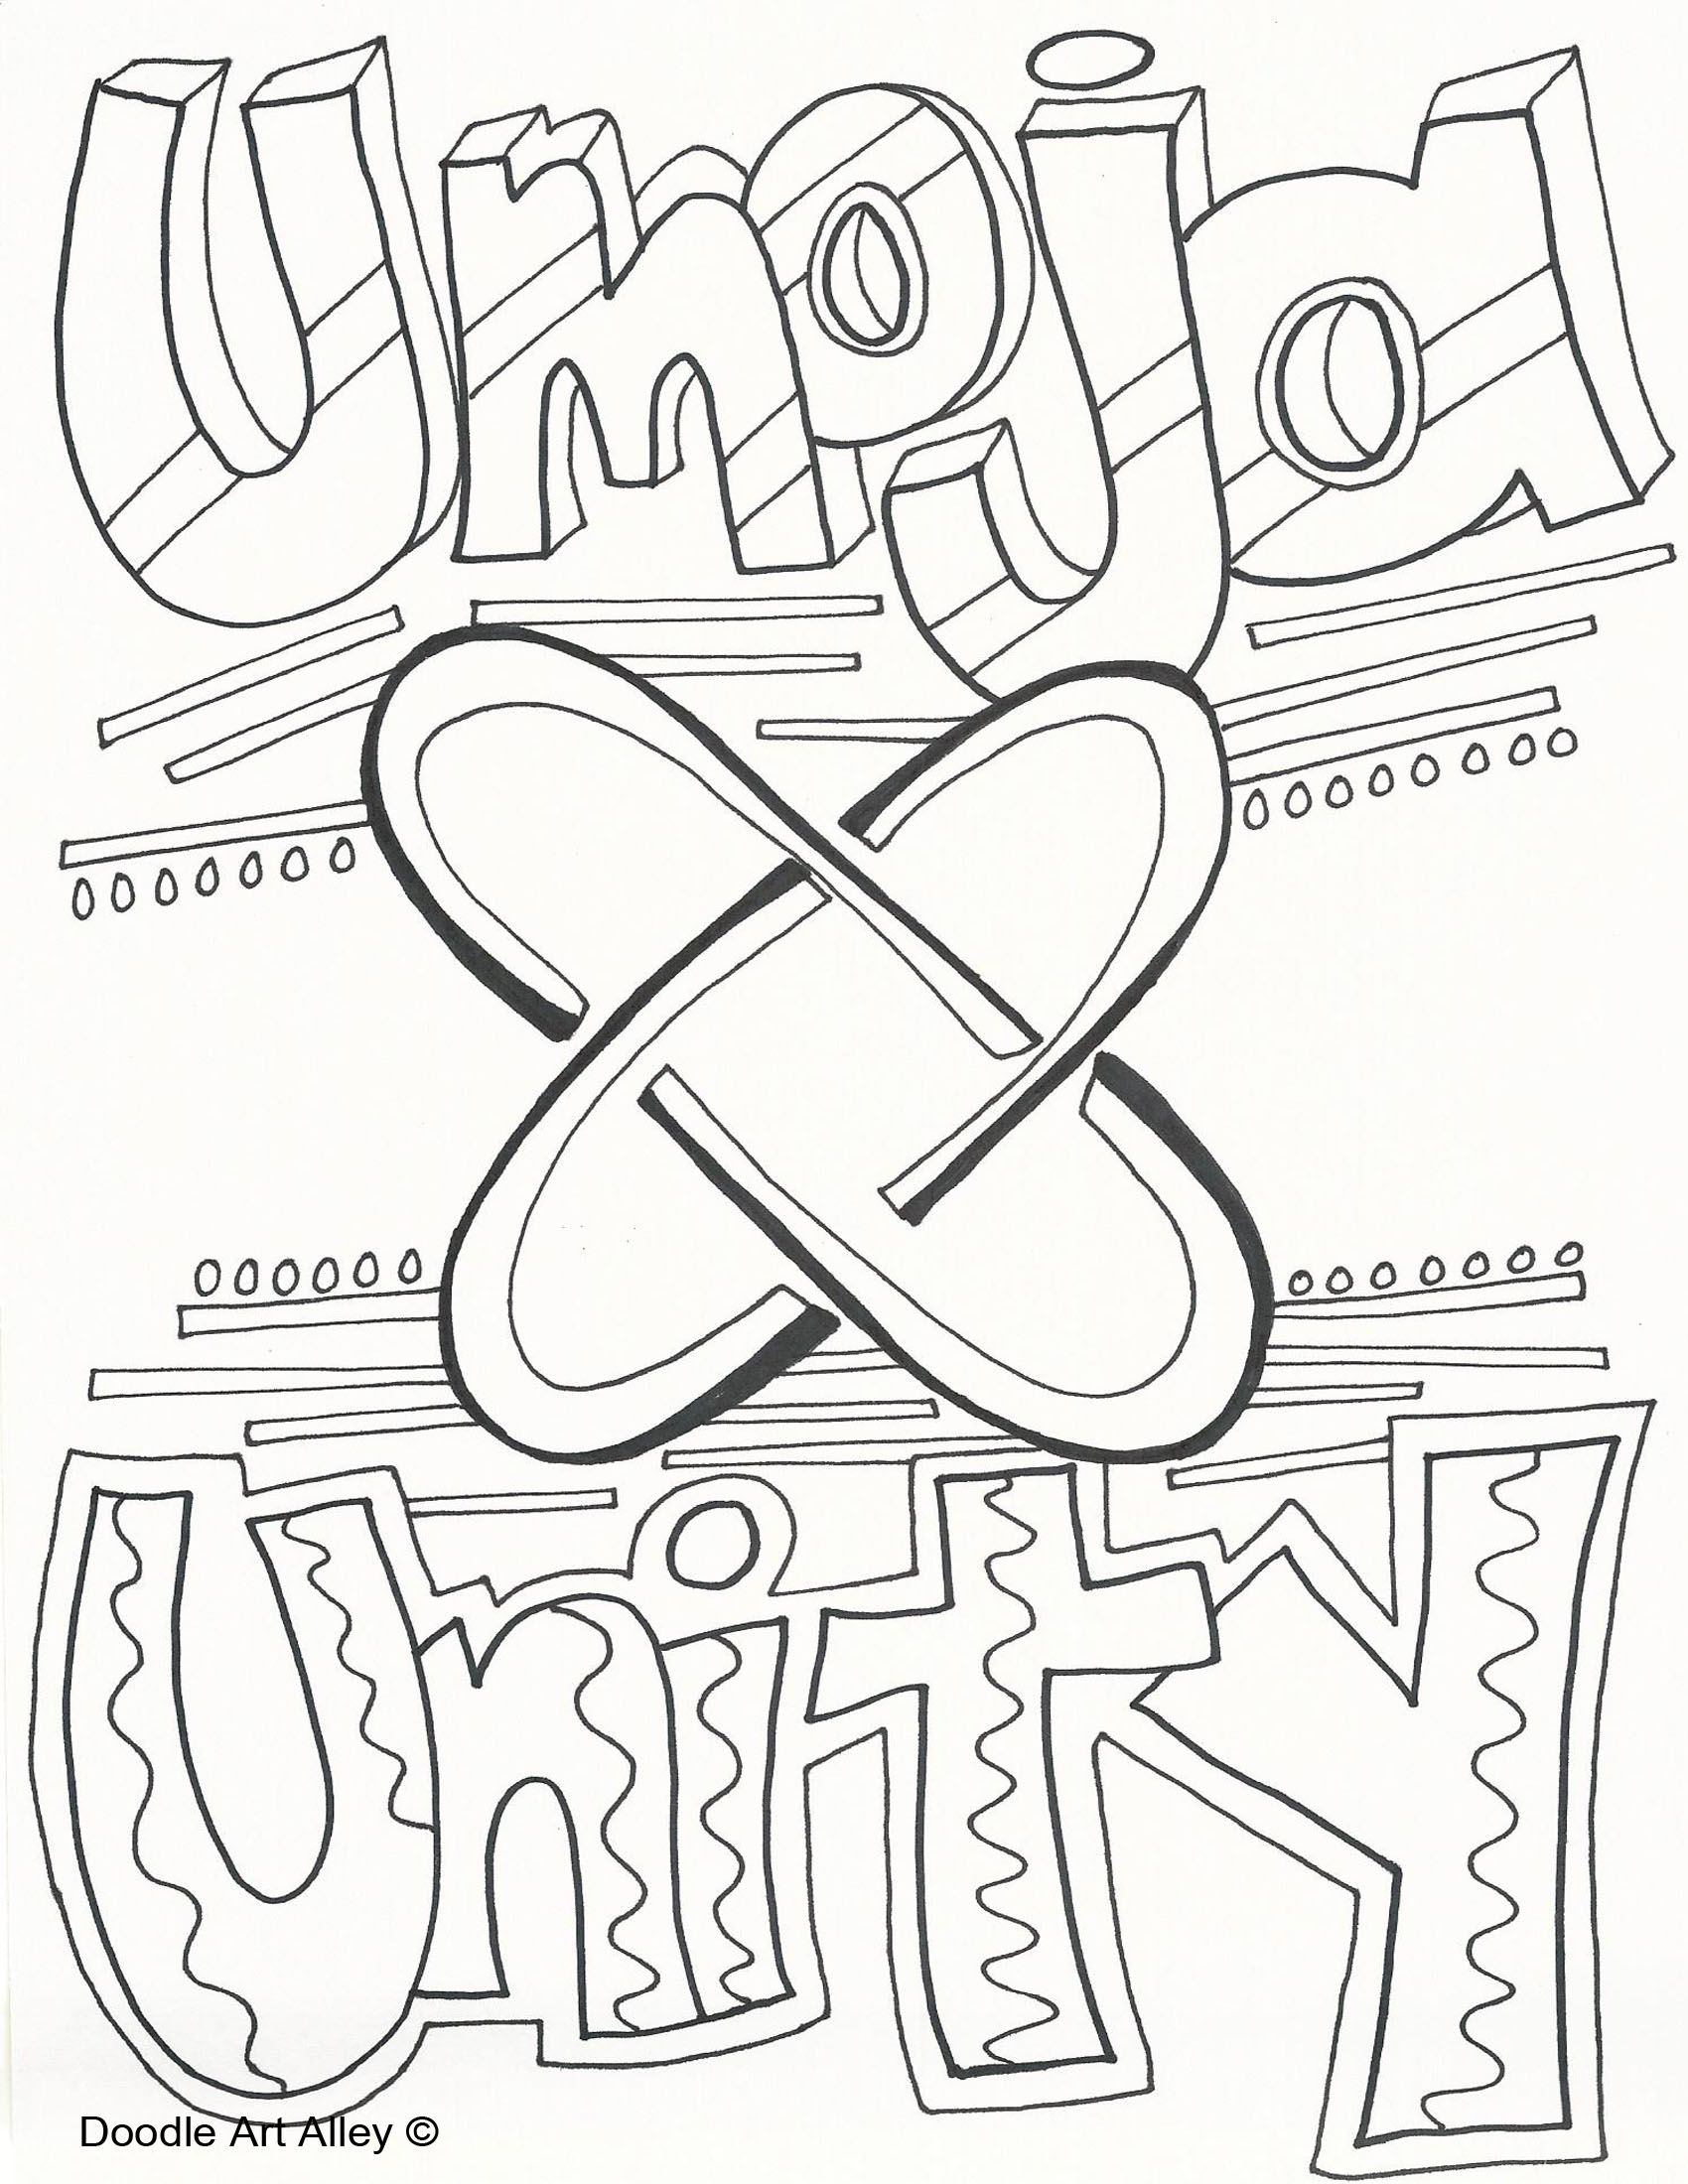 Kwanzaa Coloring Pages Doodle Art Alley